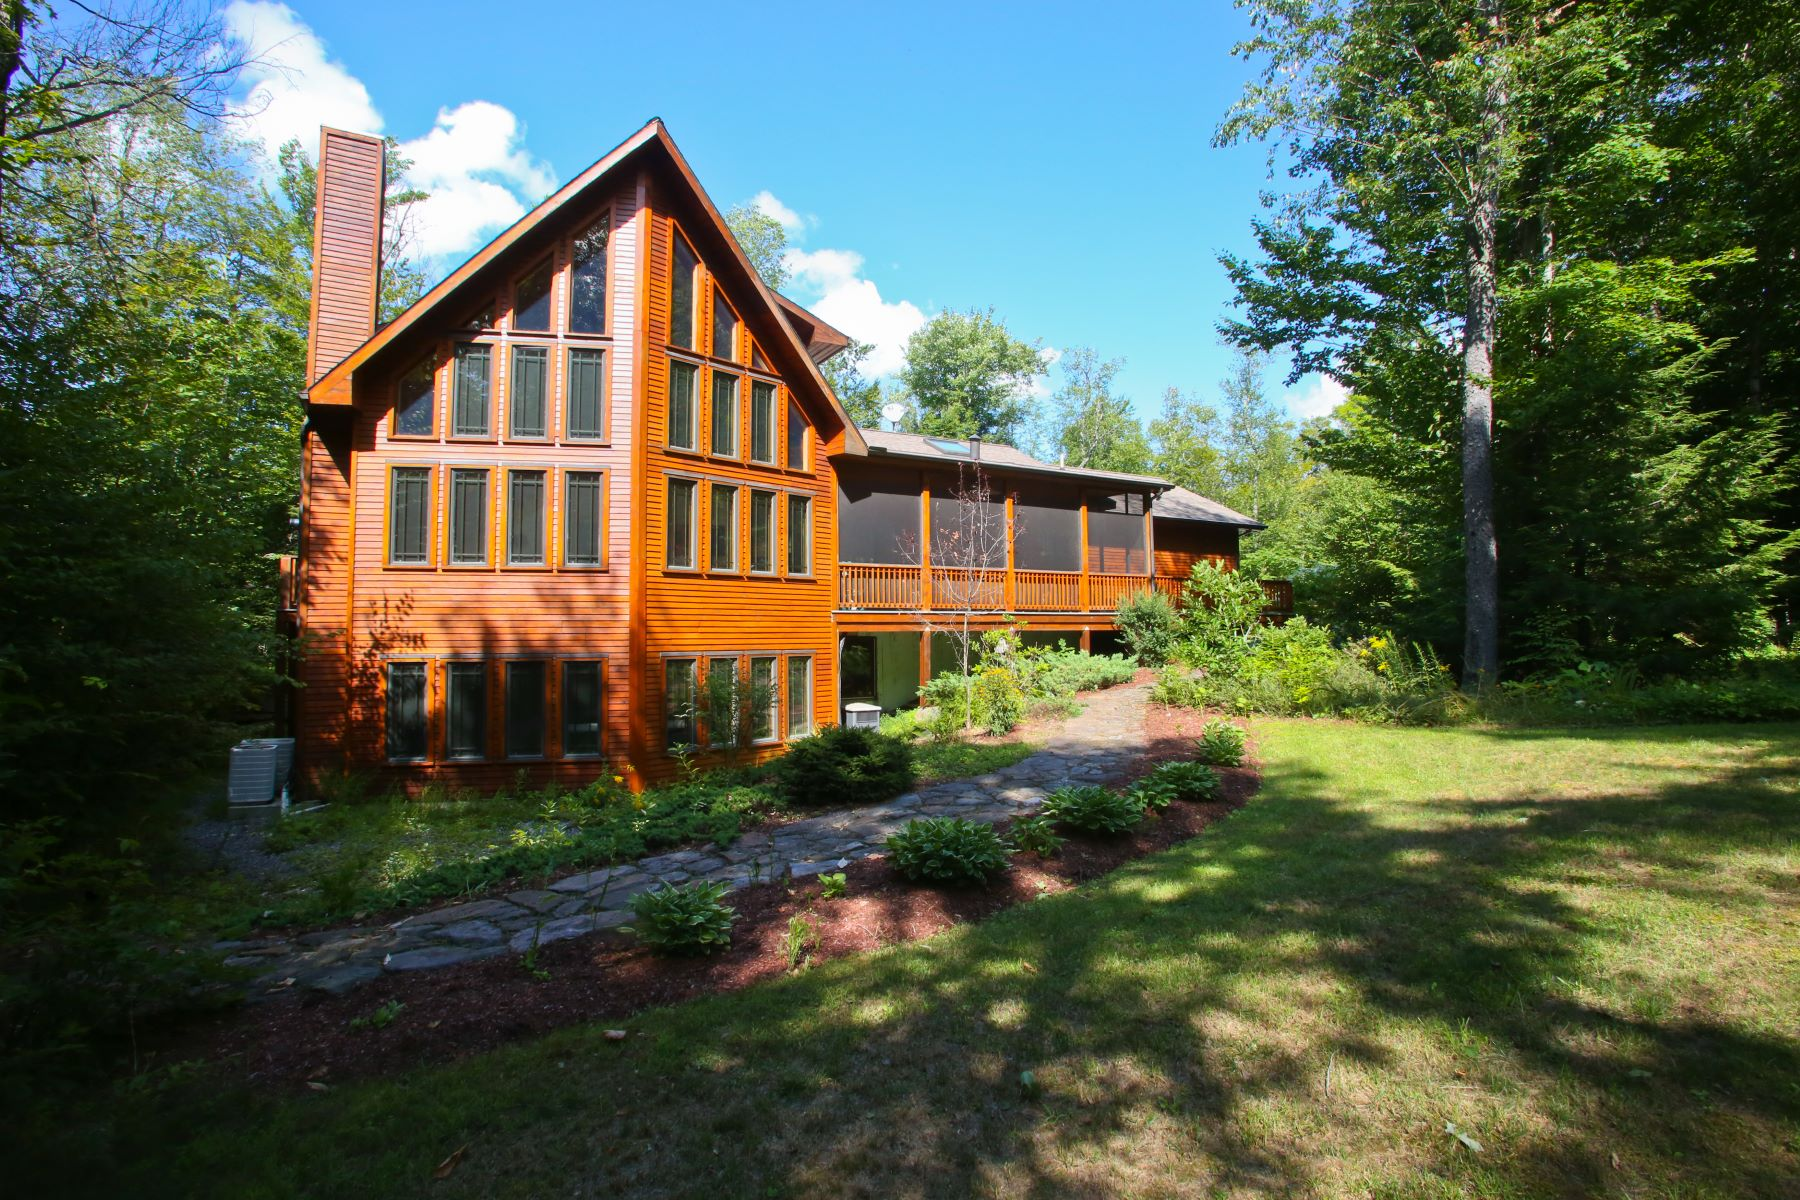 Single Family Homes for Sale at Steeped in Modern Country Warmth 108 Valley View Rd Becket, Massachusetts 01223 United States